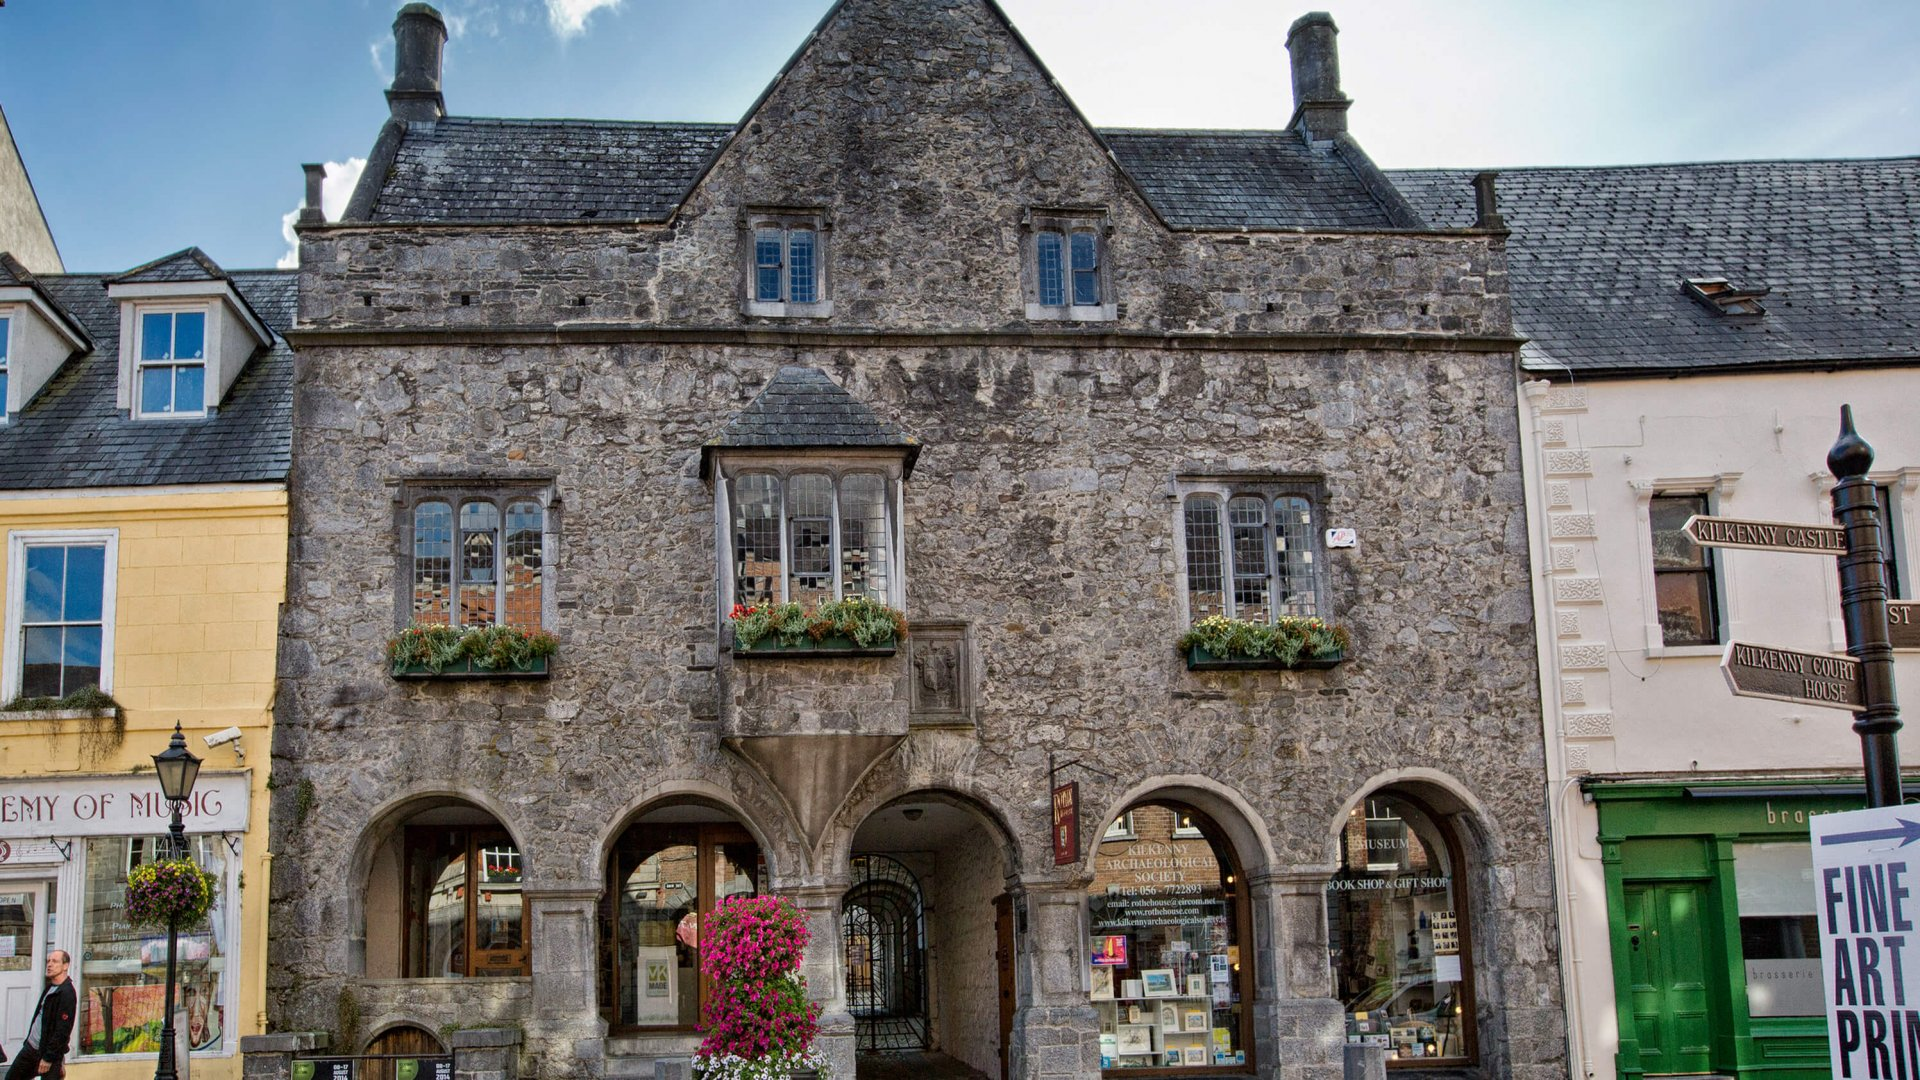 Facade of medieval Rothe House in Kilkenny